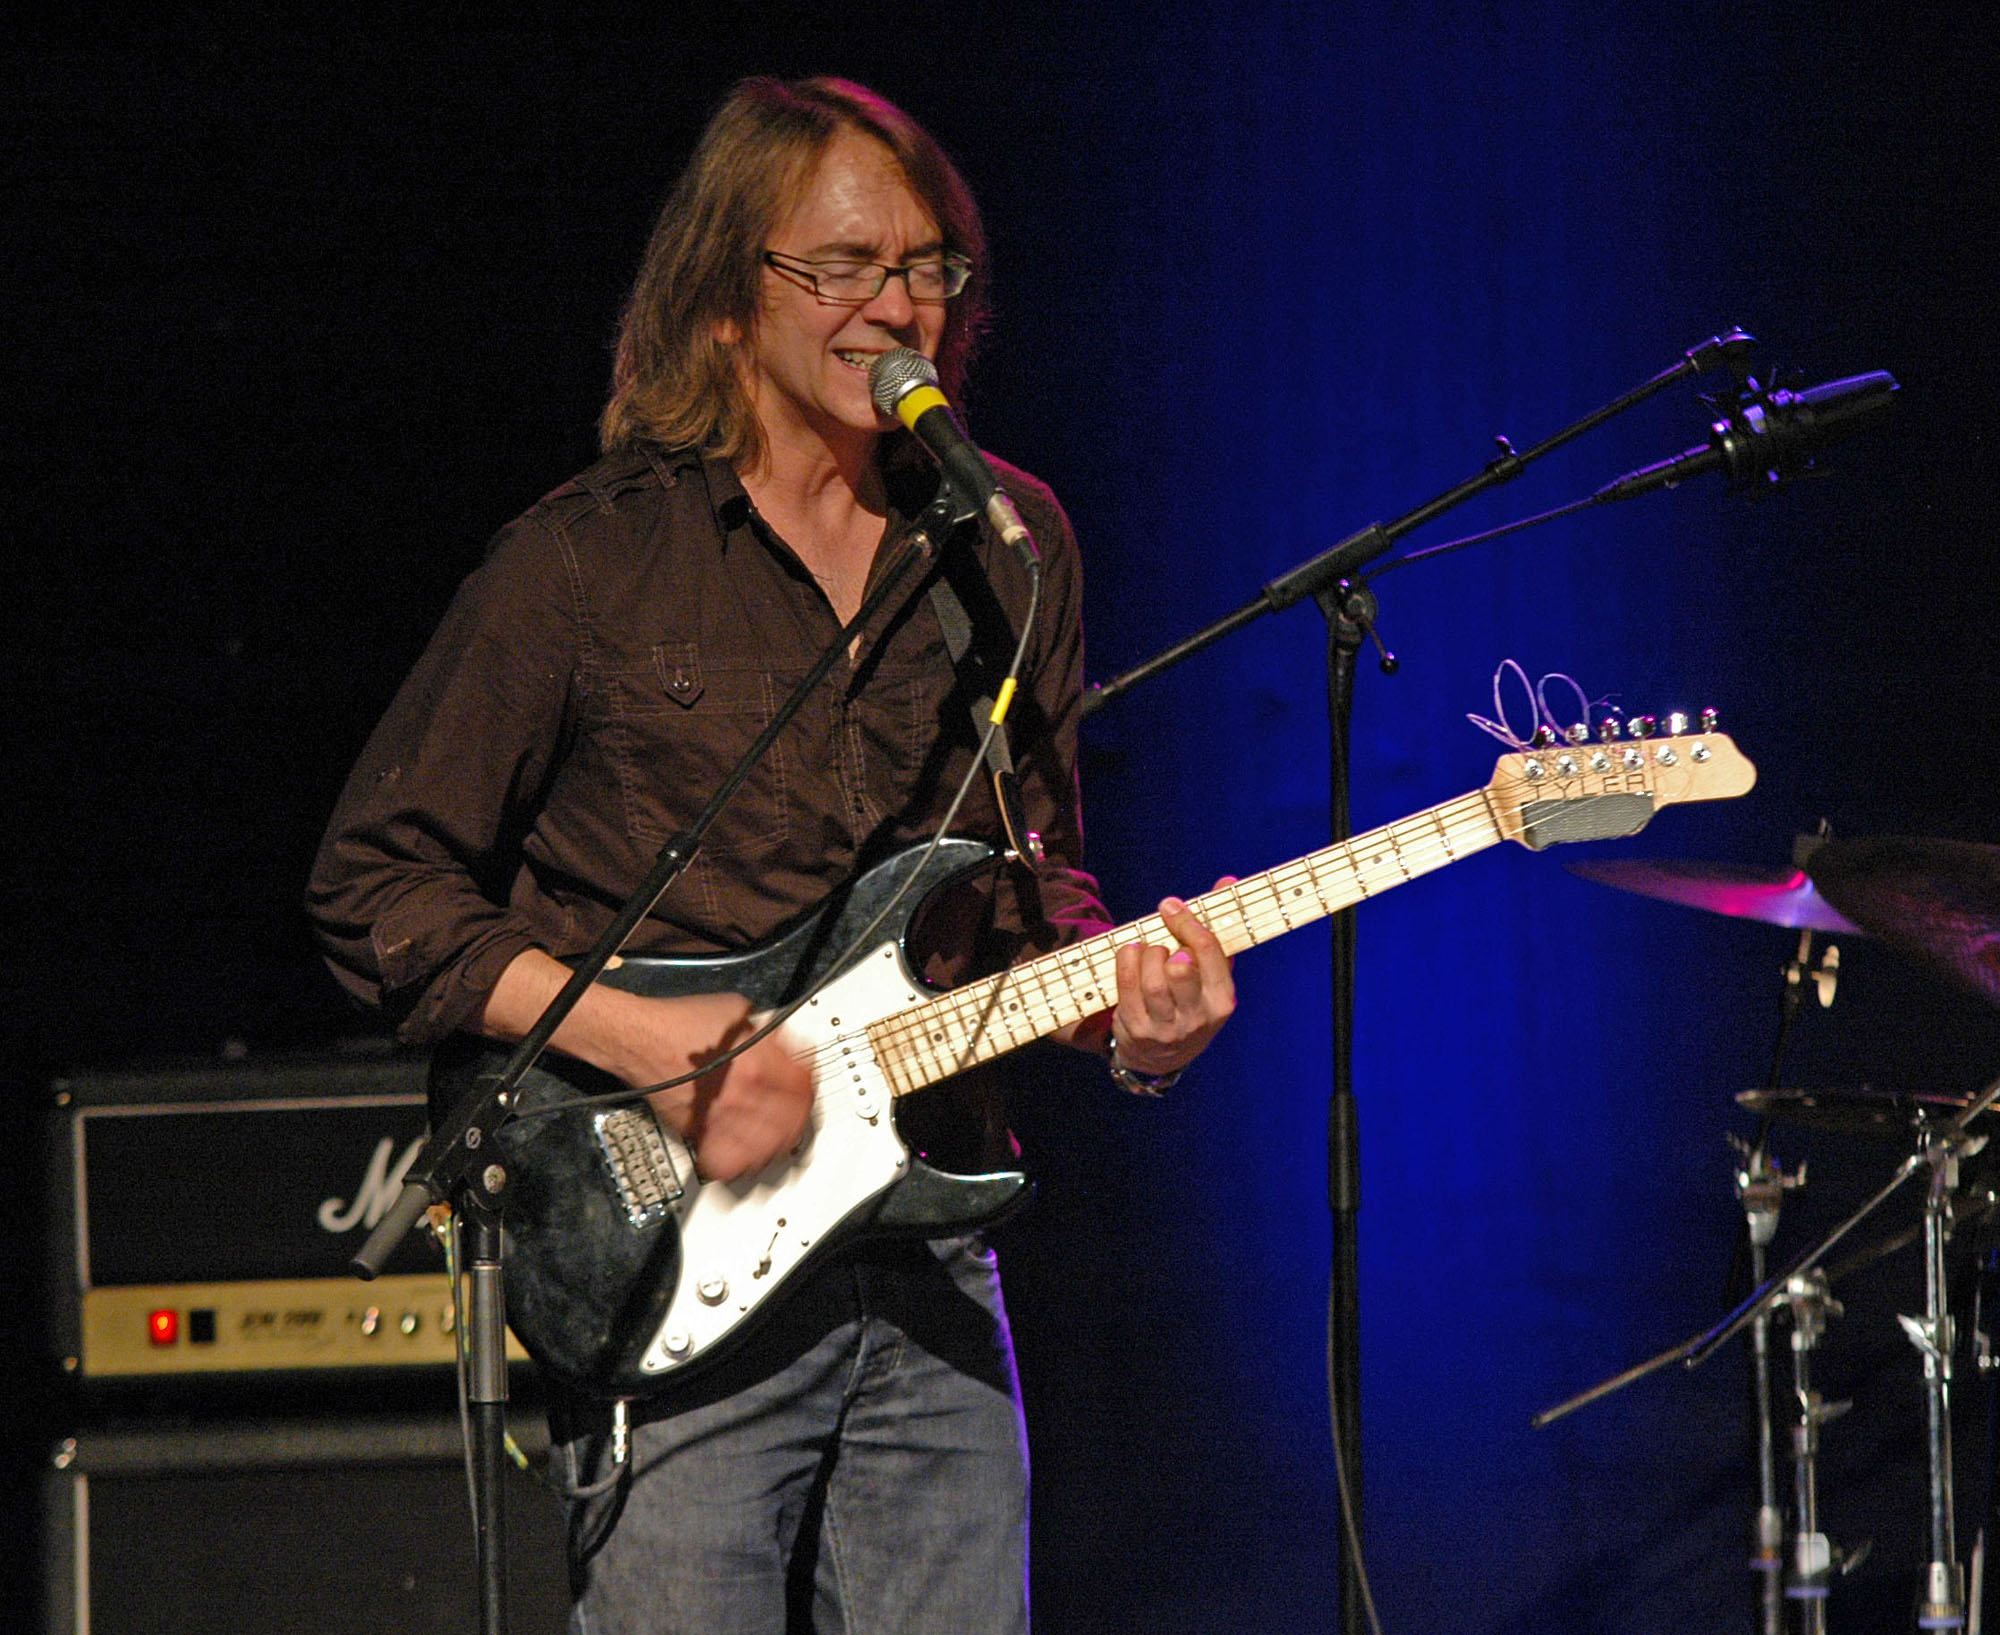 Wayne Krantz, Performing at the 2010 New Universe Music Festival